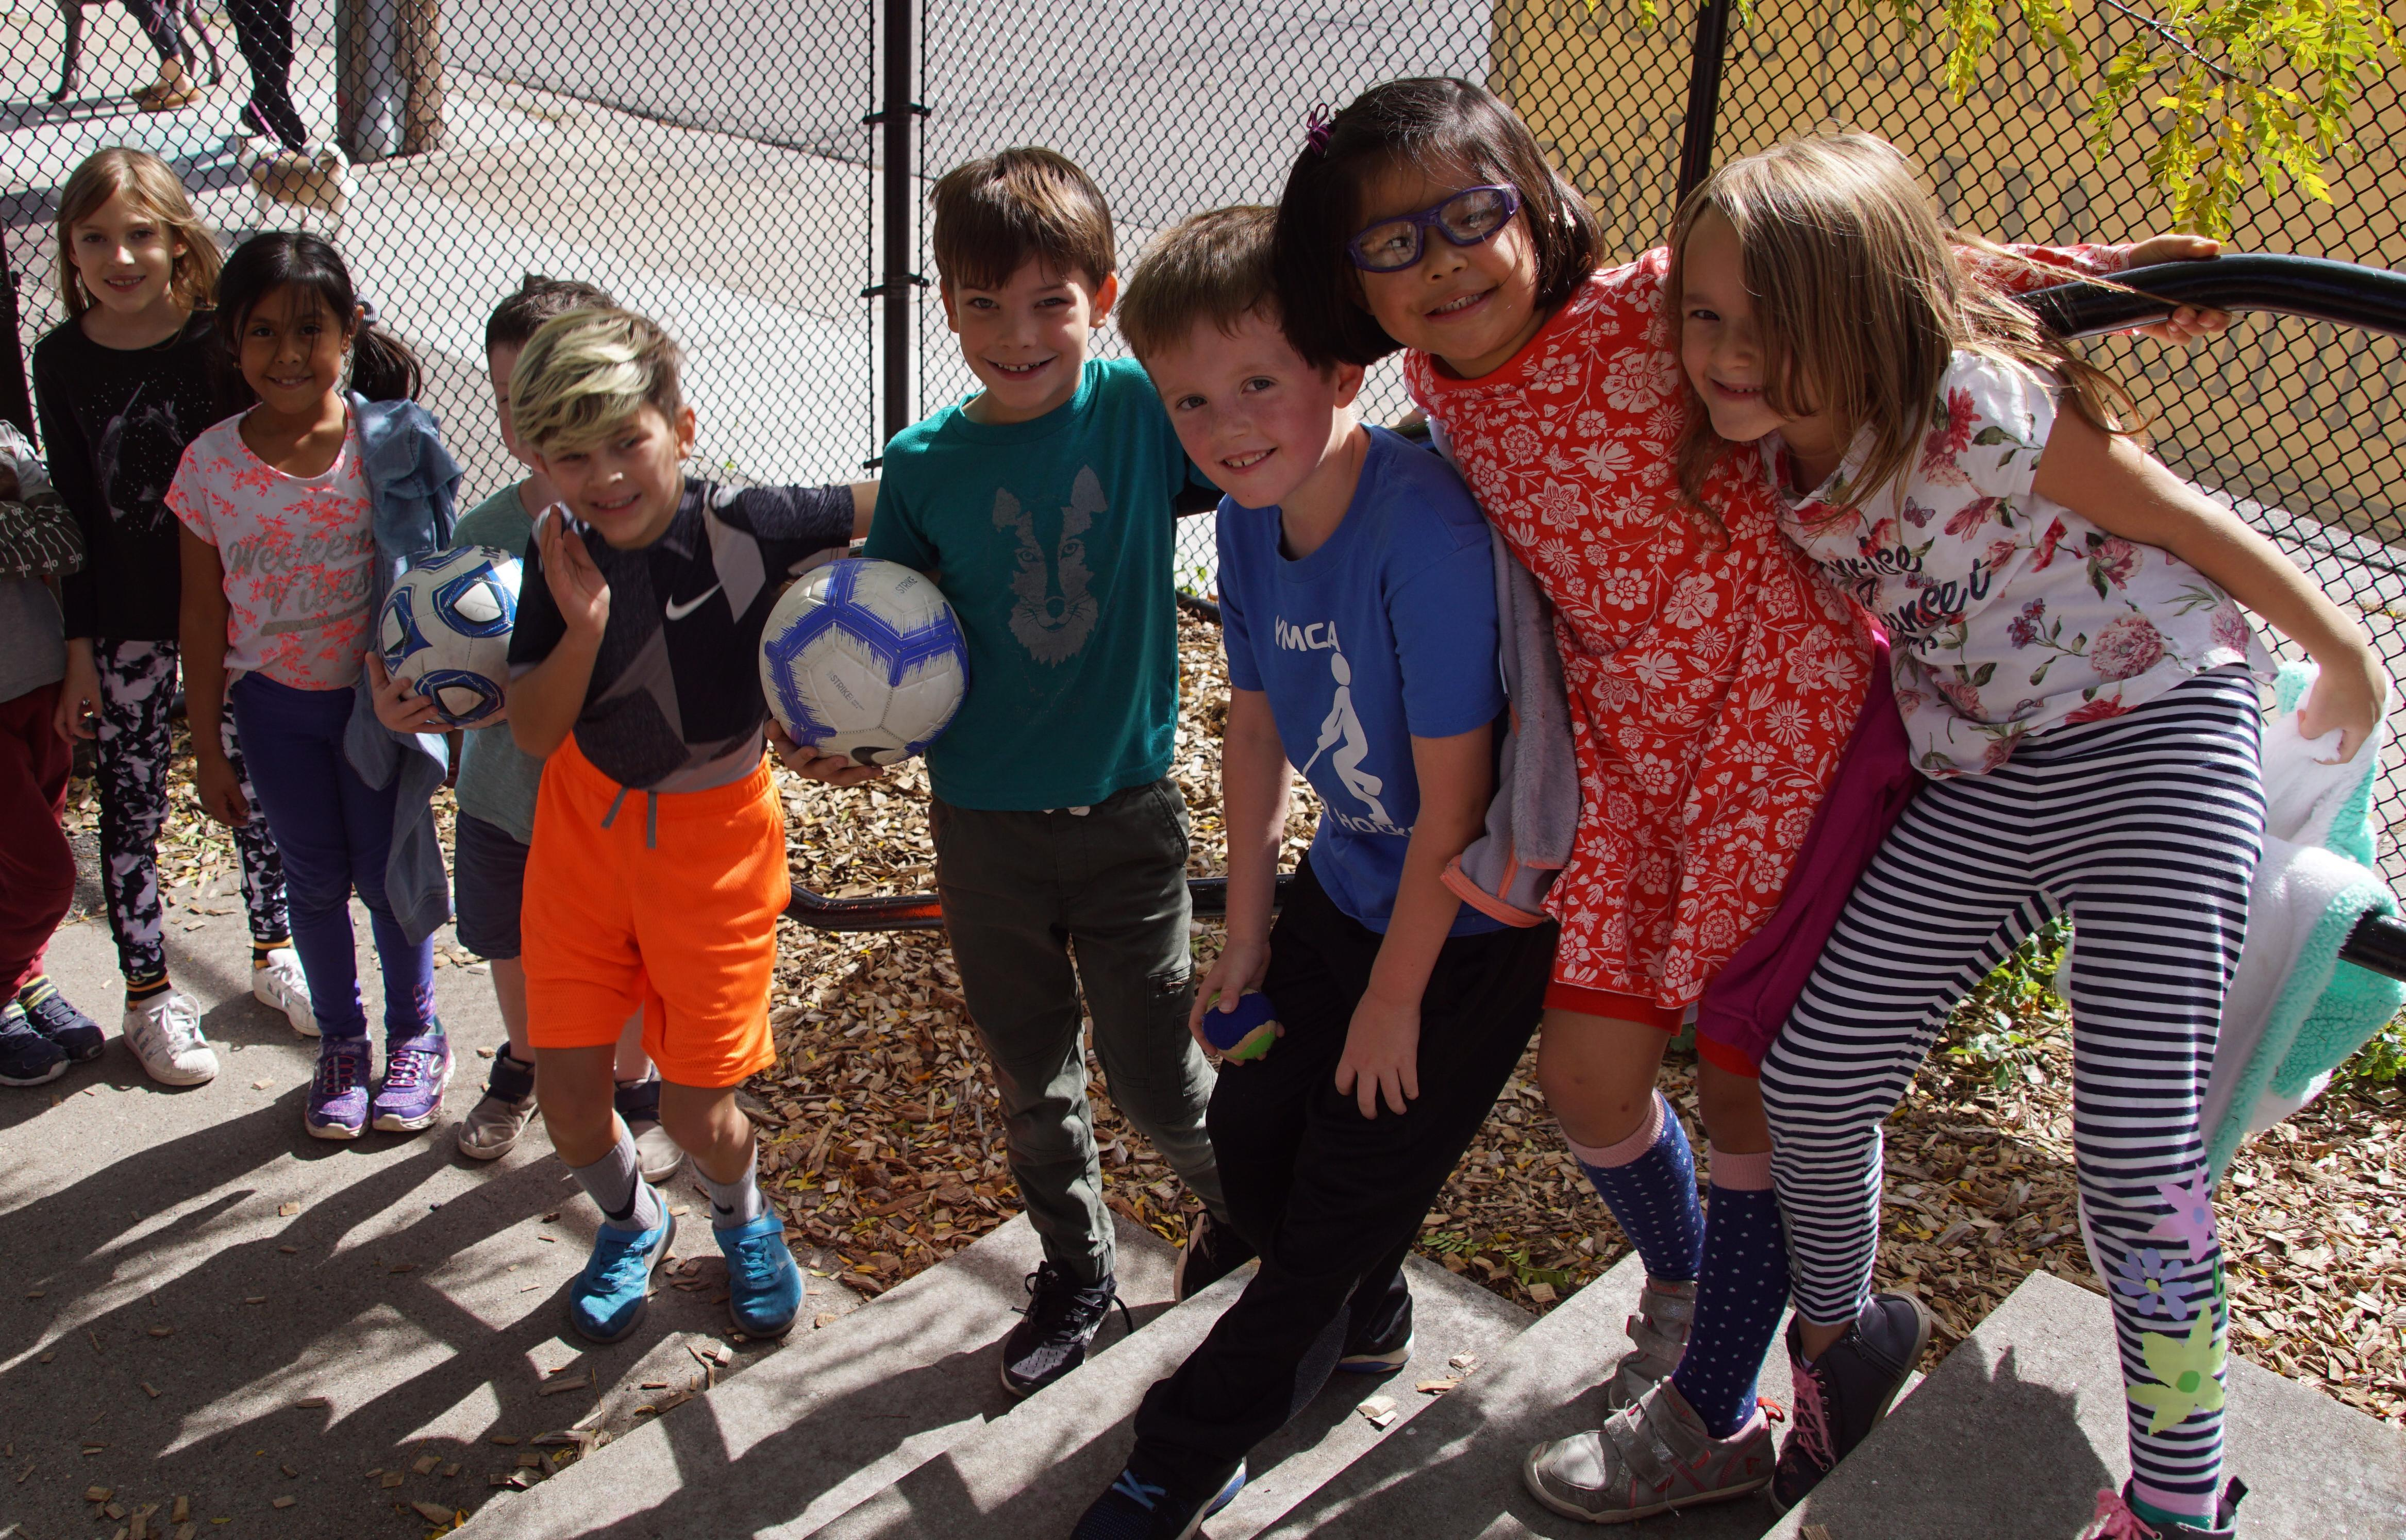 Students lined up for recess